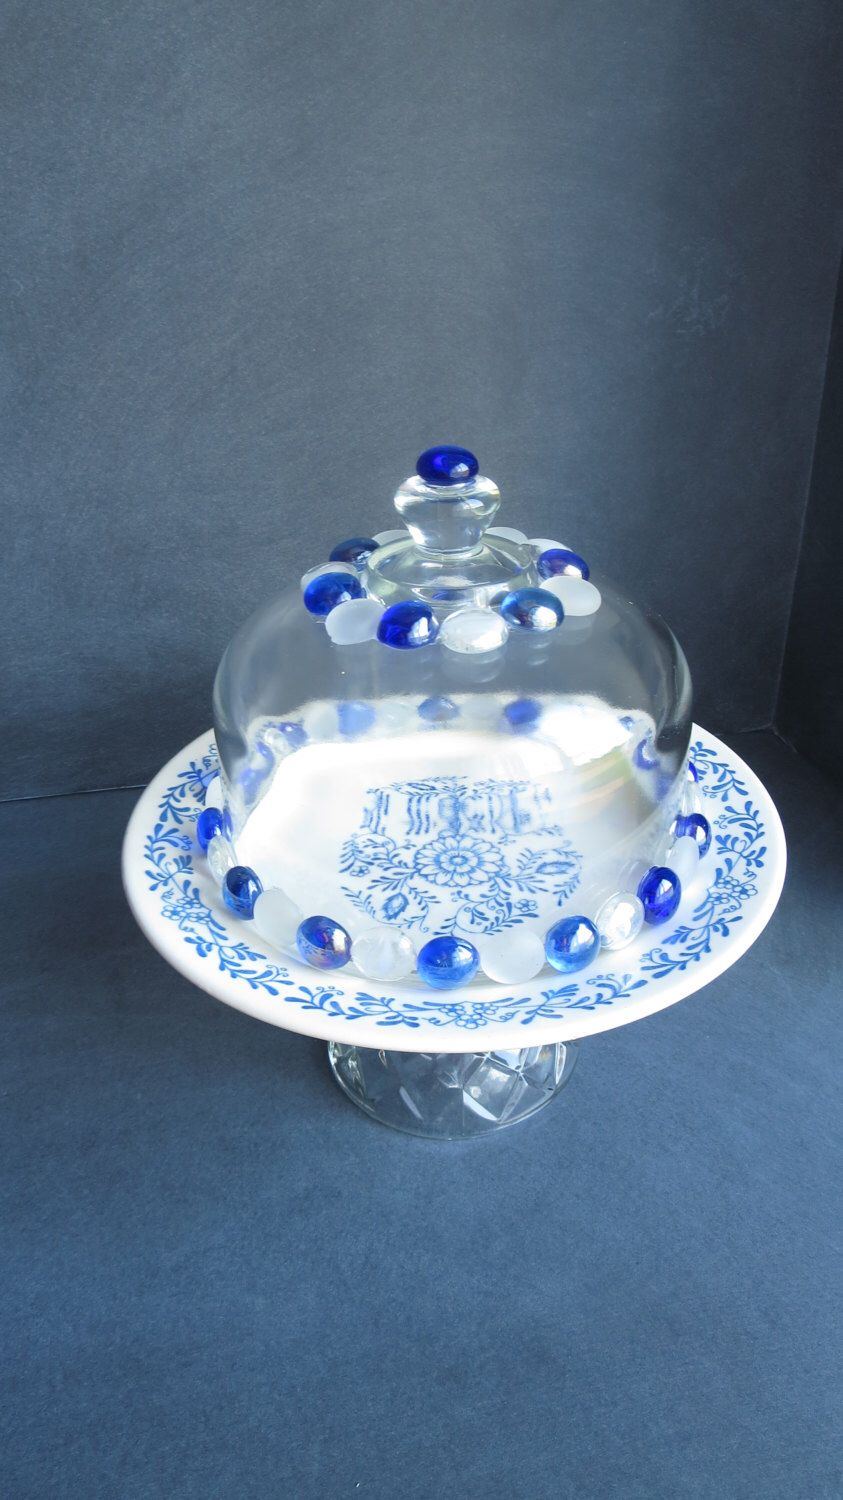 Plate Stand with Dome Cupcake Stand with Cloche Blue and White Cake Plate   & Plate Stand with Dome Cupcake Stand with Cloche Blue and White ...